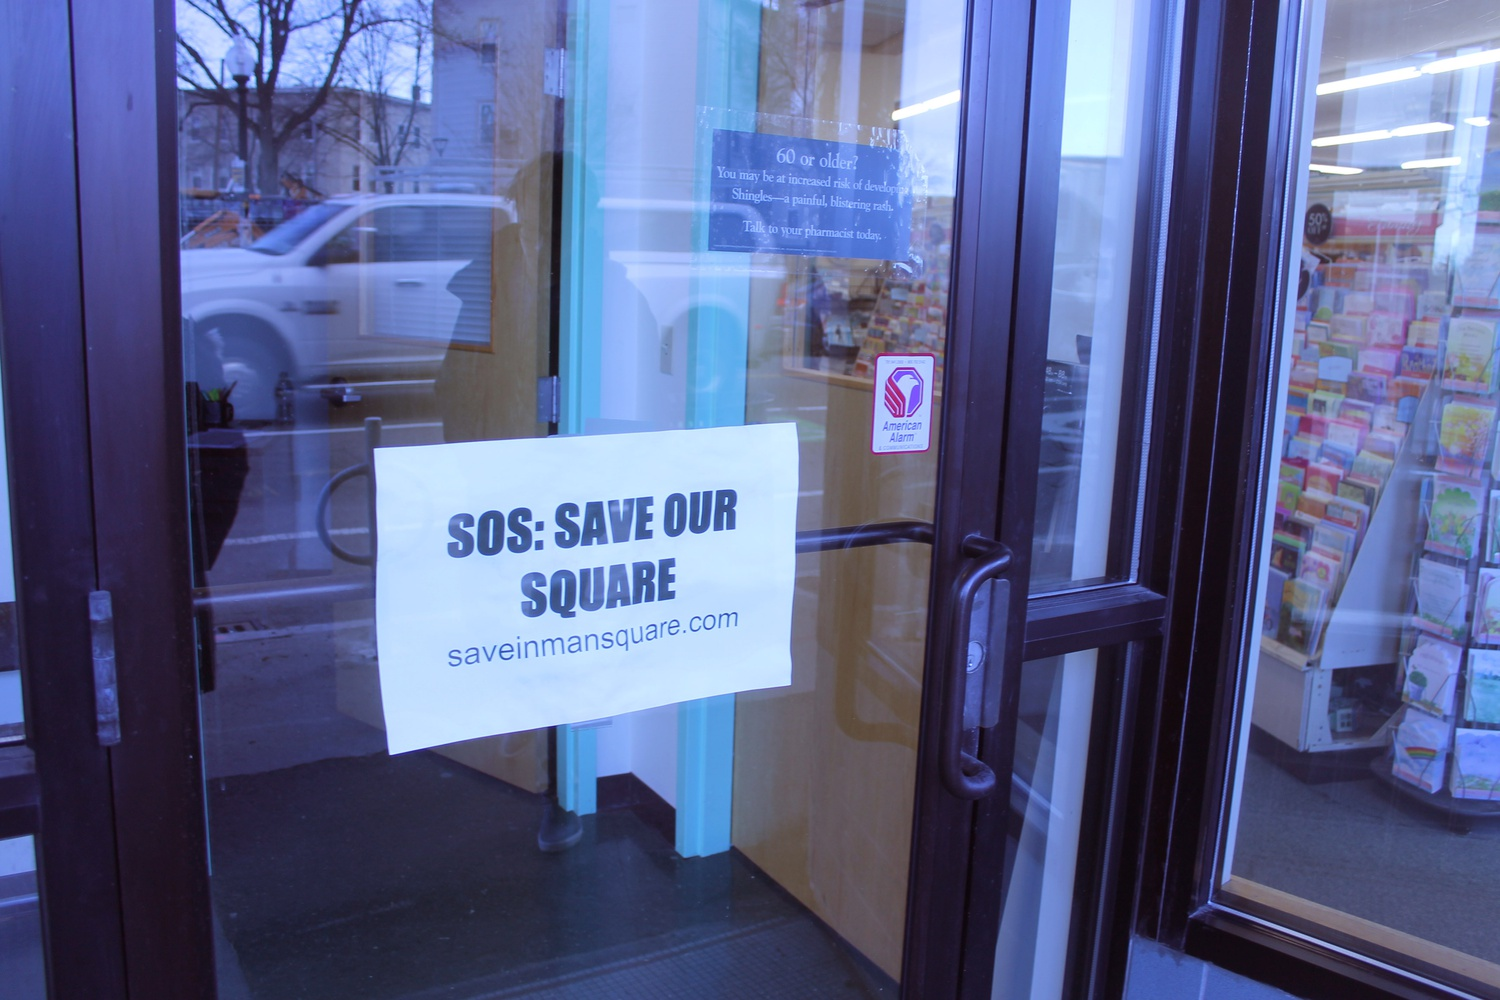 Inman Square residents and businesses are trying to stop the City Council's planned two-year renovations of Vellucci Plaza.